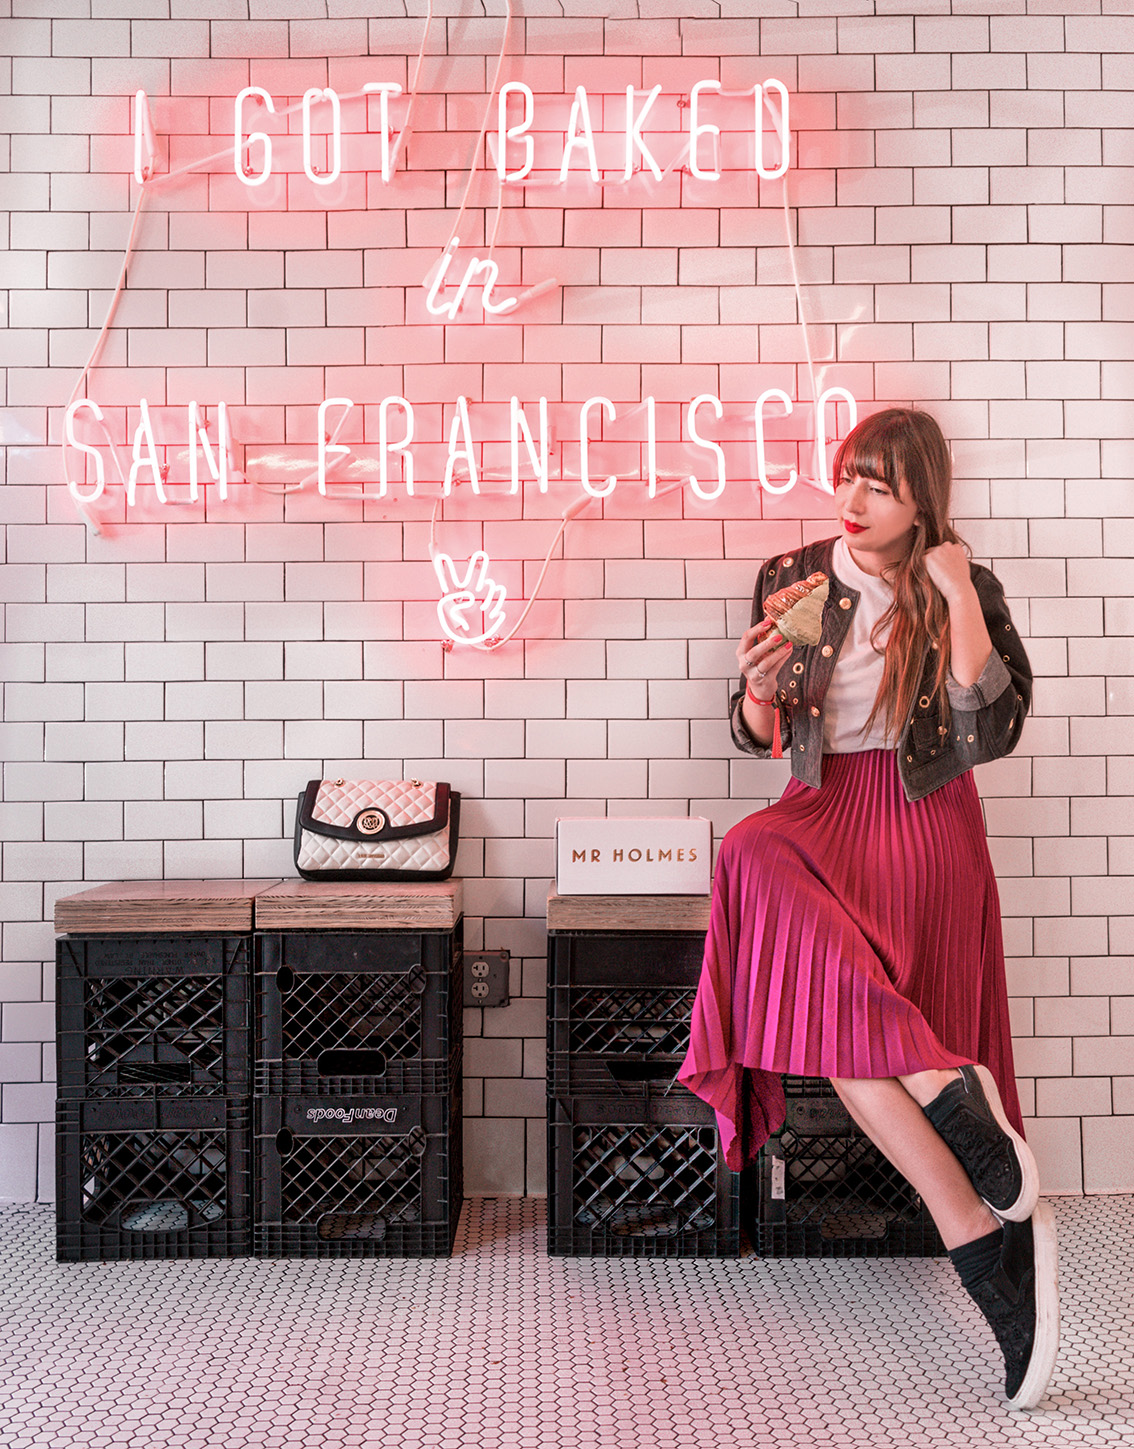 8 10 most instagrammable places in San Francisco you don't have to miss!